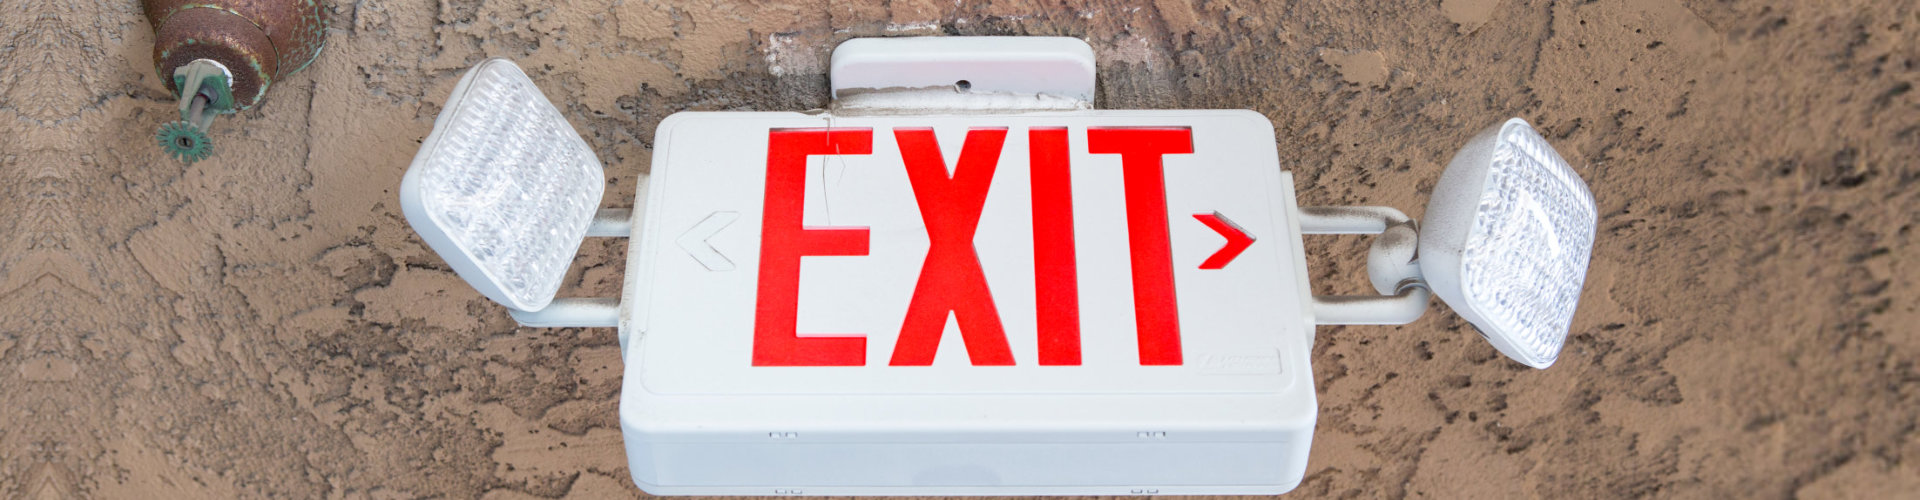 exit sign with emergency light and fire extinguishing system